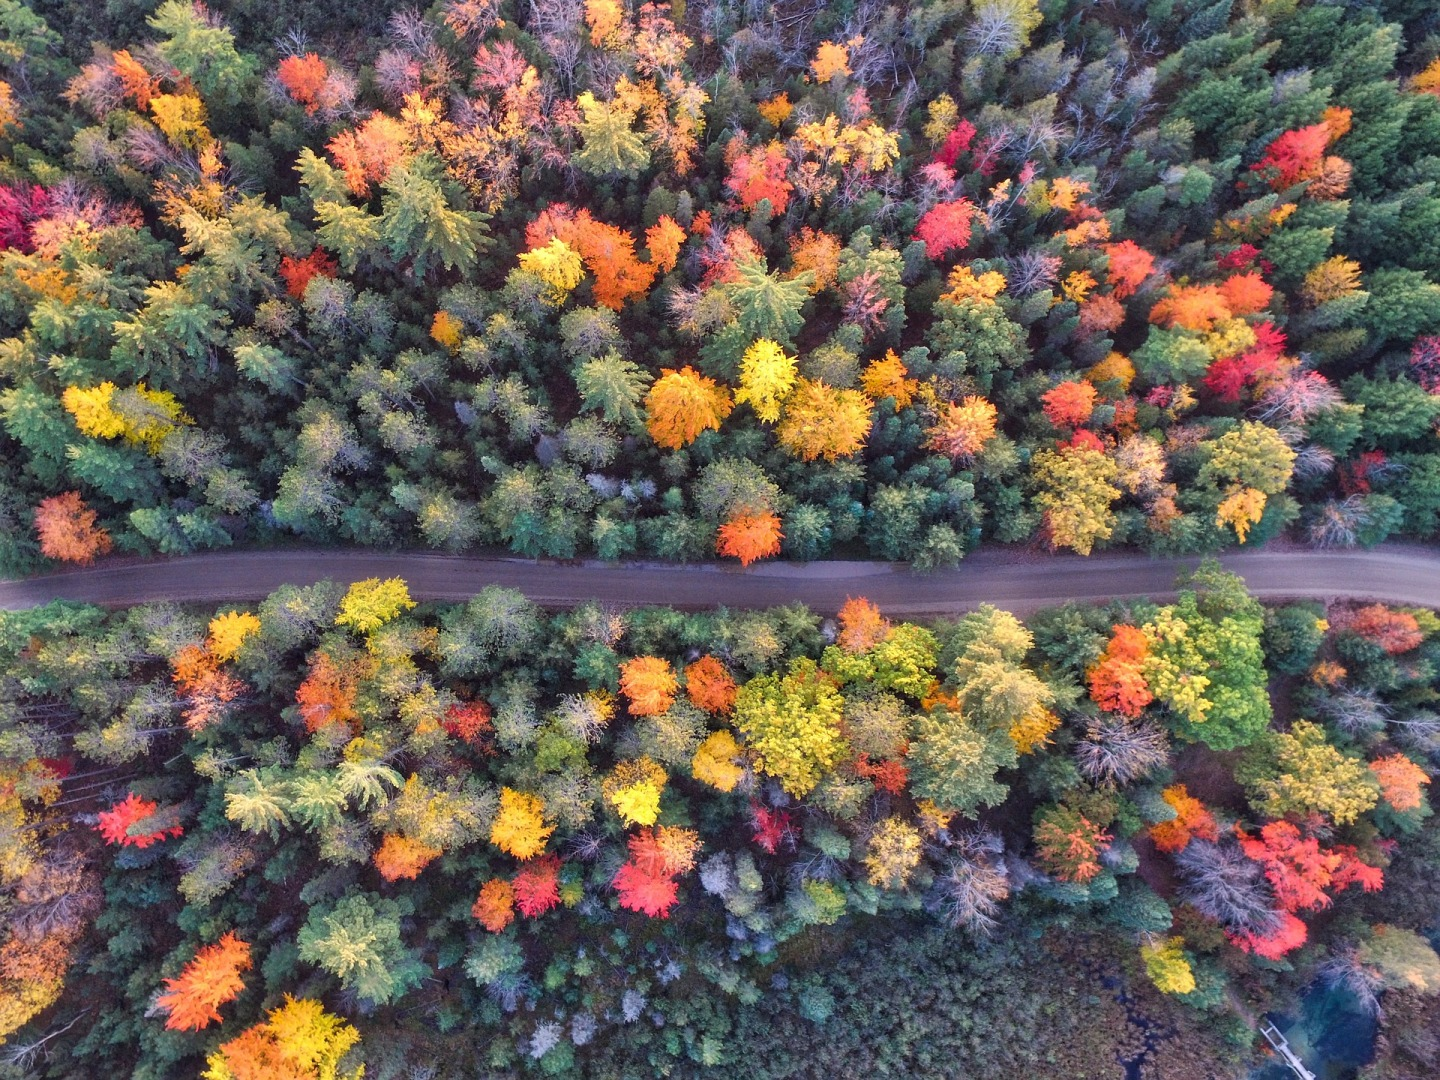 Sky view of a trees in fall with lots of changing colors